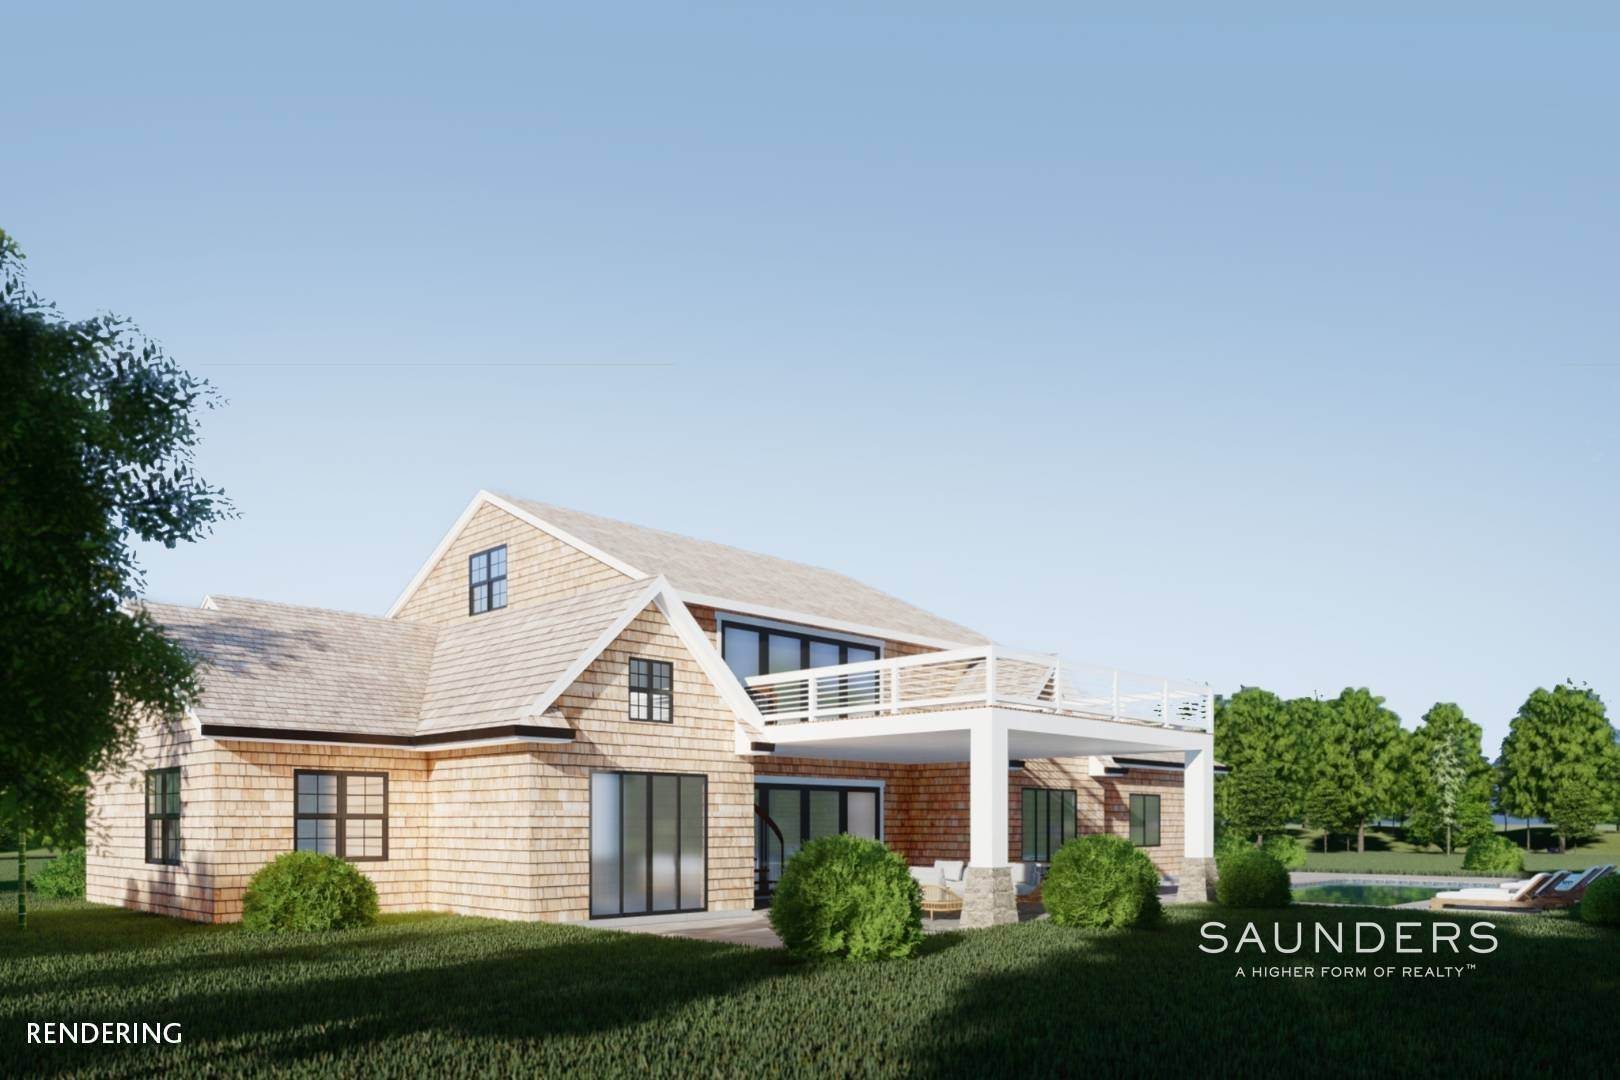 9. Single Family Homes for Sale at New Construction In Sagaponack With Pool 26 Forest Crossing, Sagaponack, Southampton Town, NY 11962